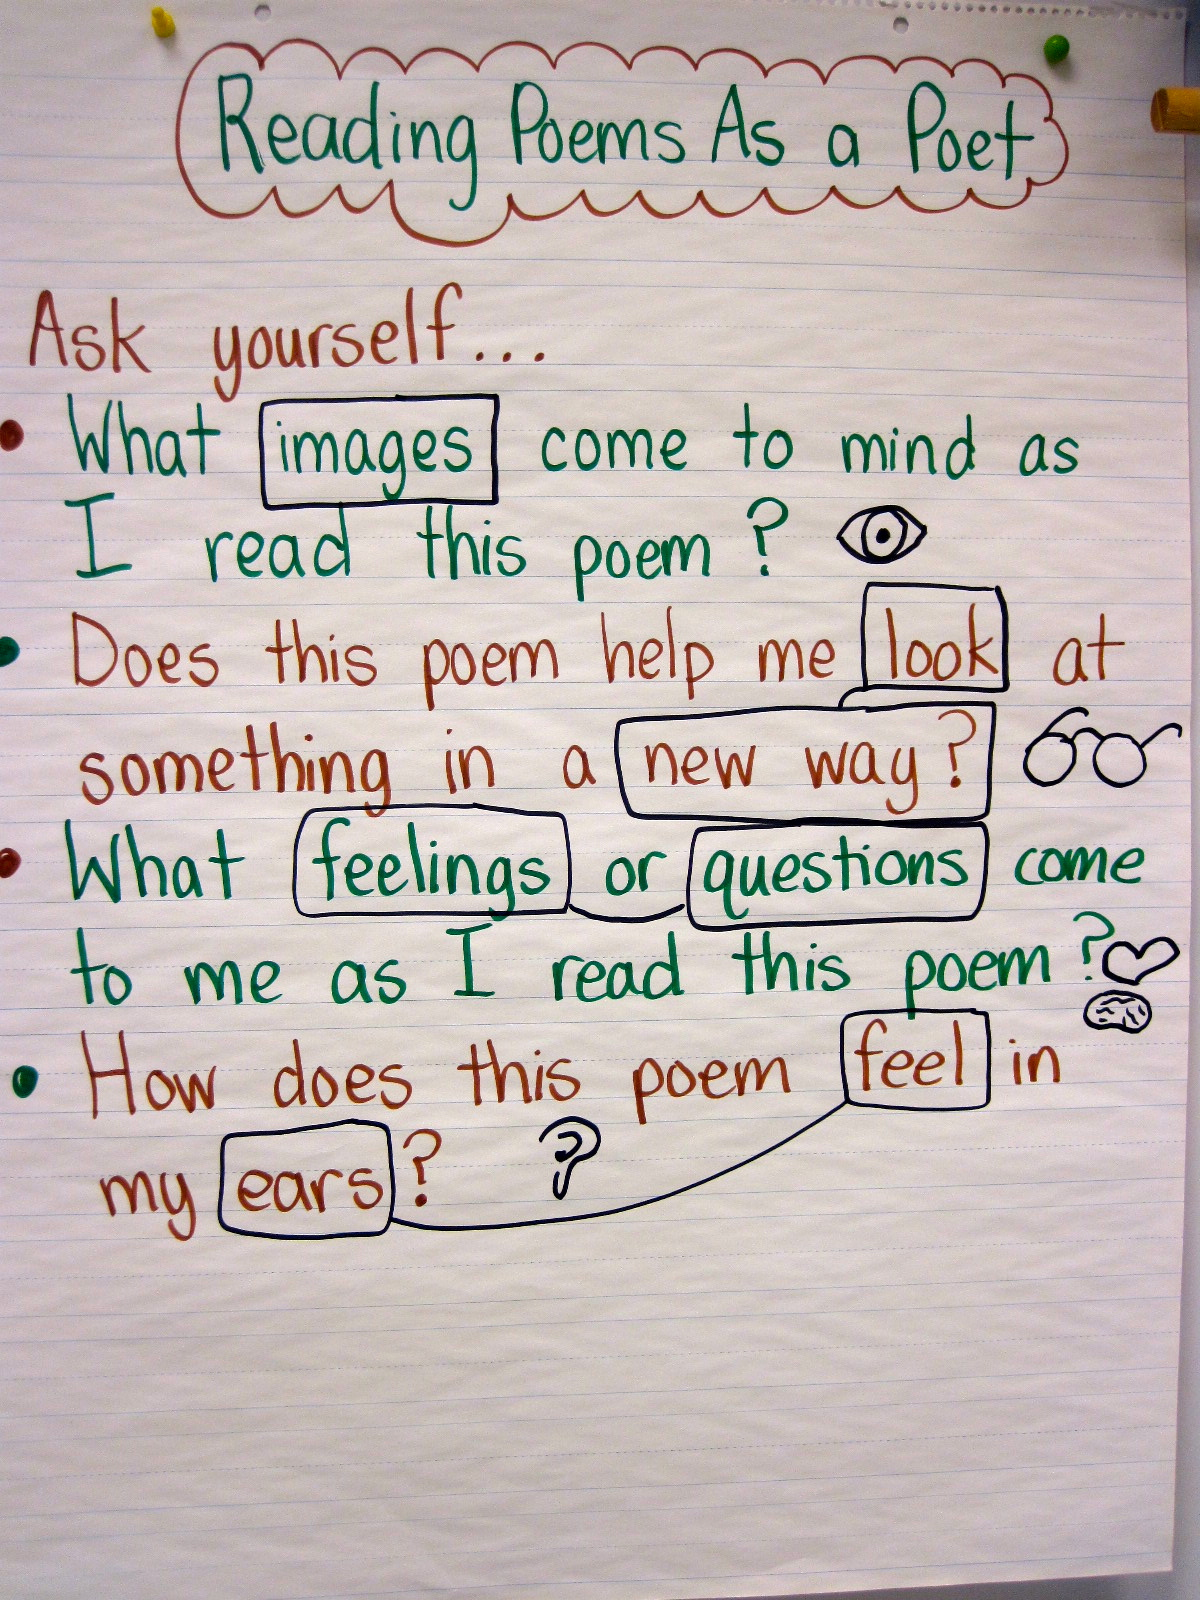 So here are 11 more ideas you can use for slam poem topics...